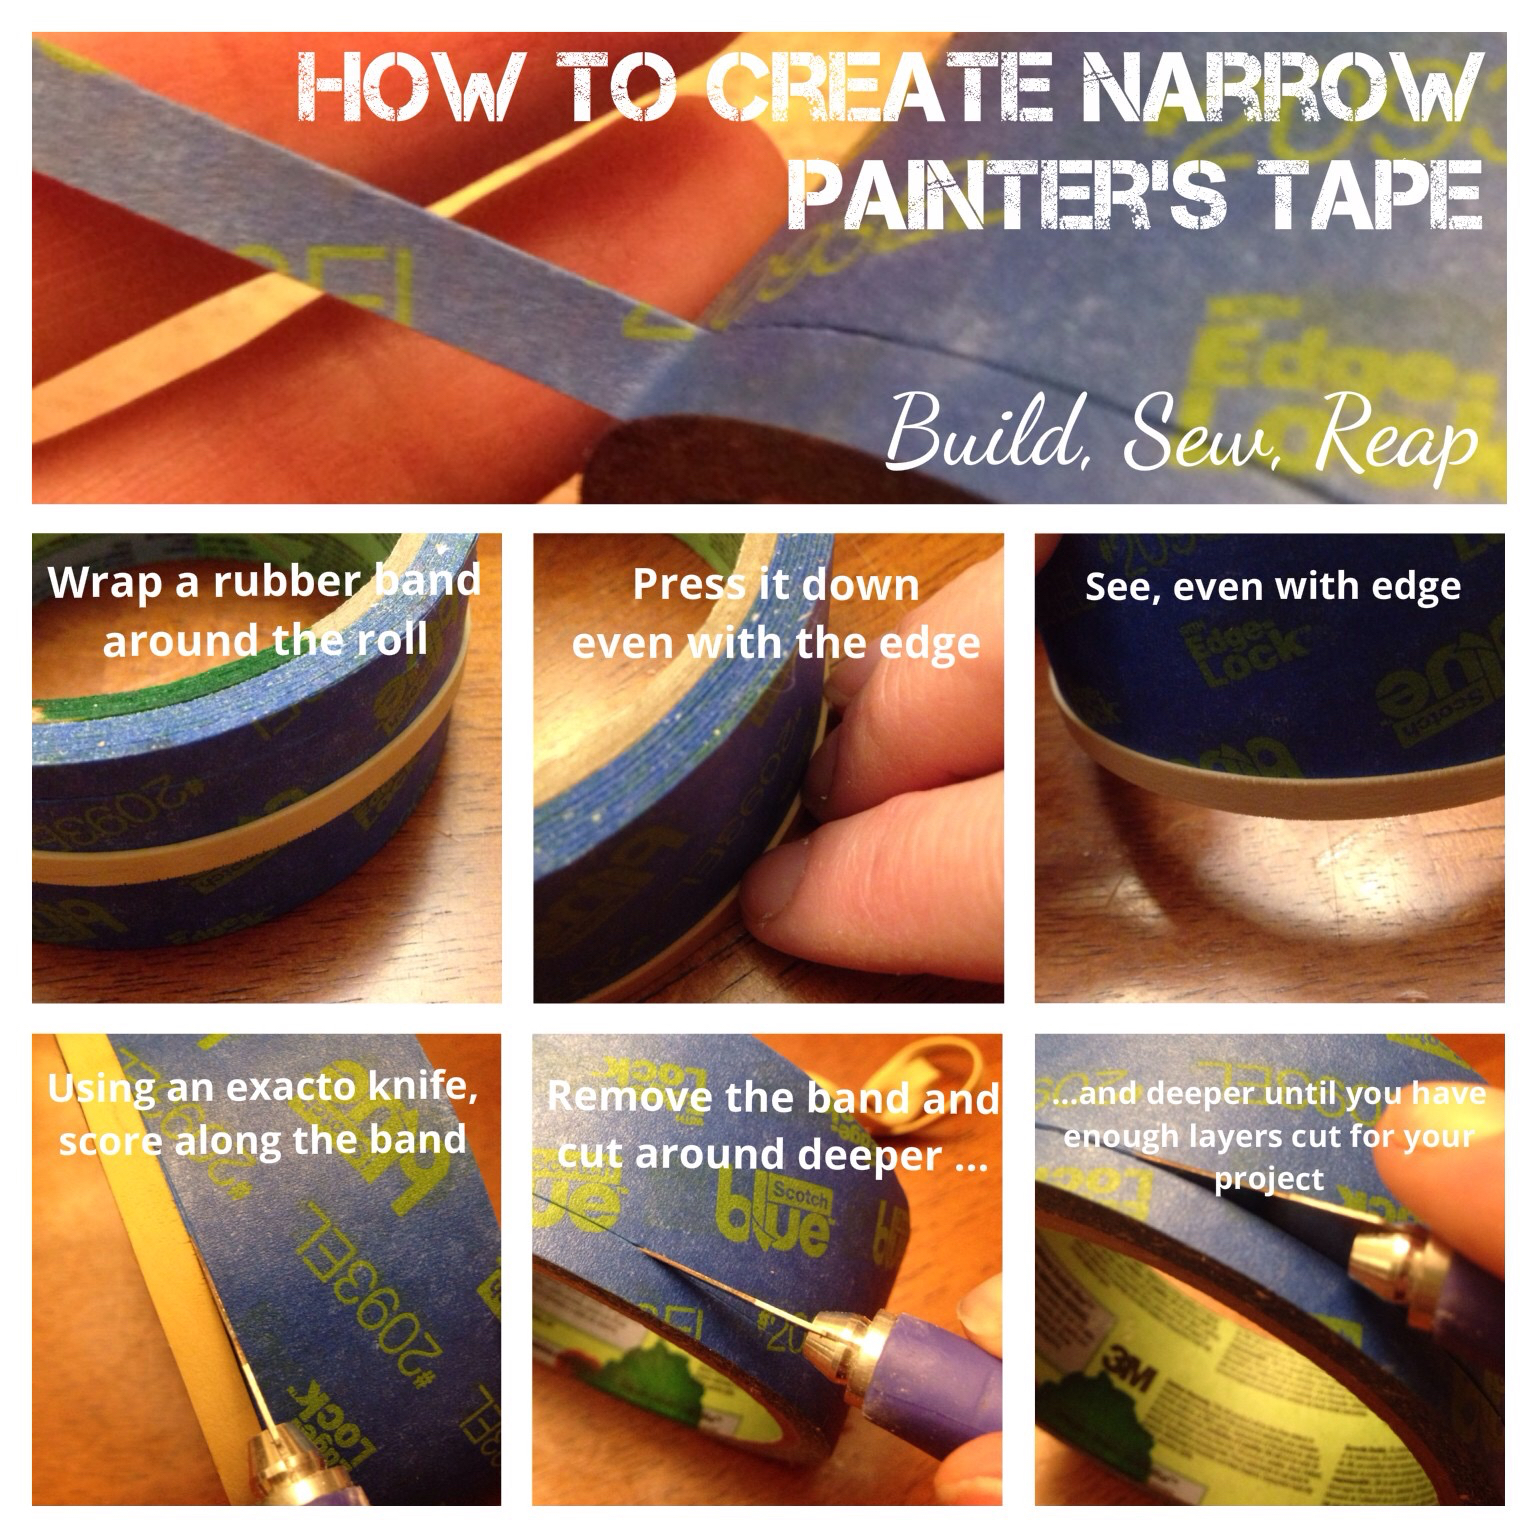 Creating Narrow Painter's Tape